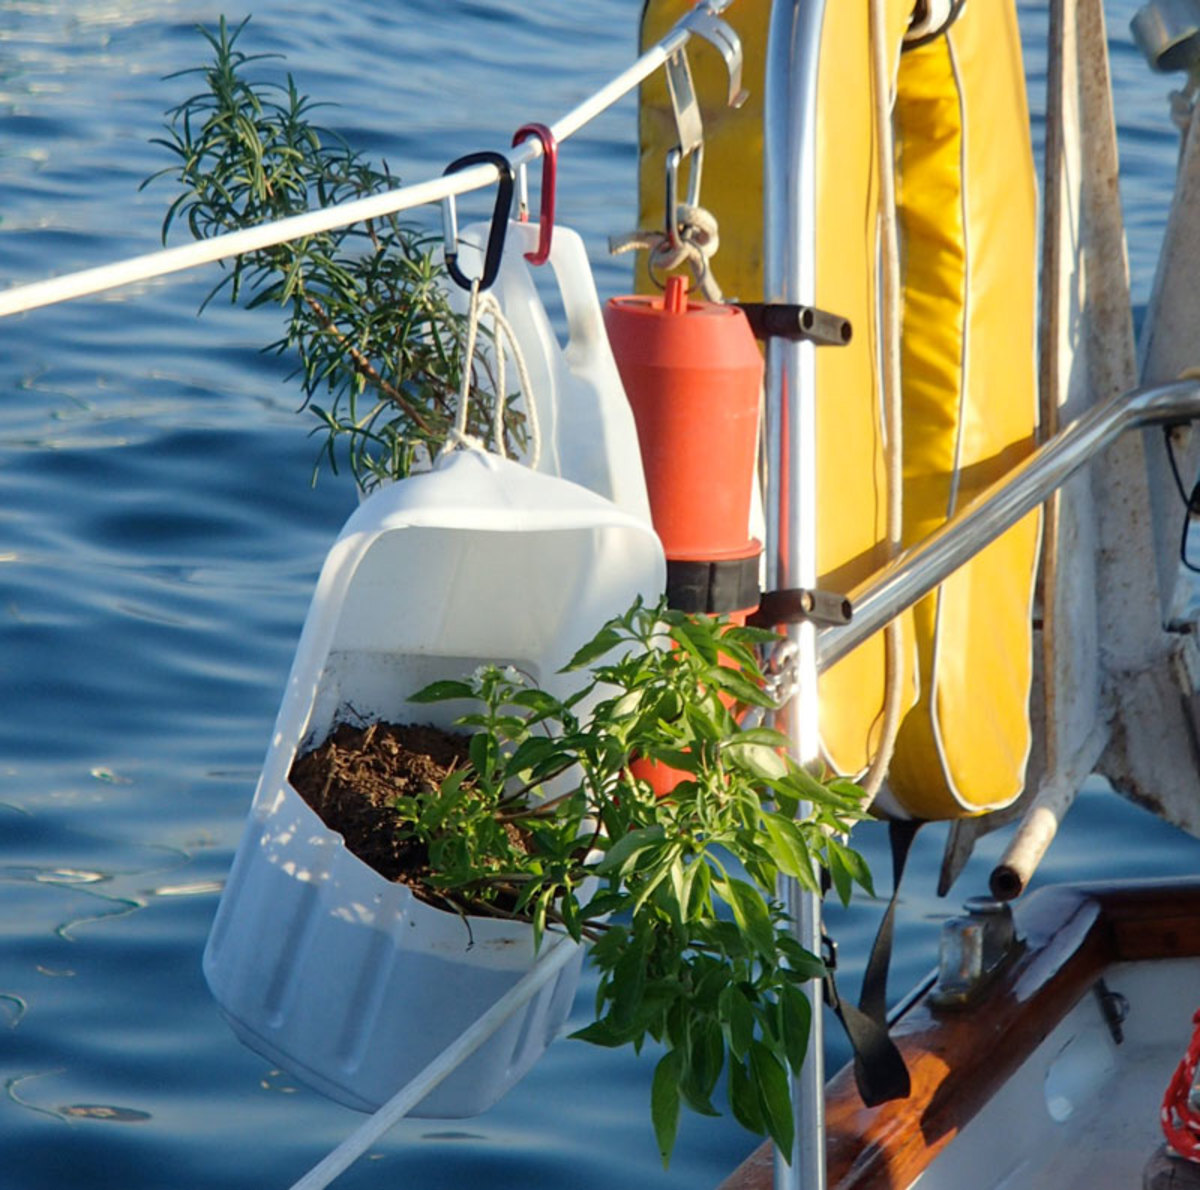 Fresh herbs from an onboard garden